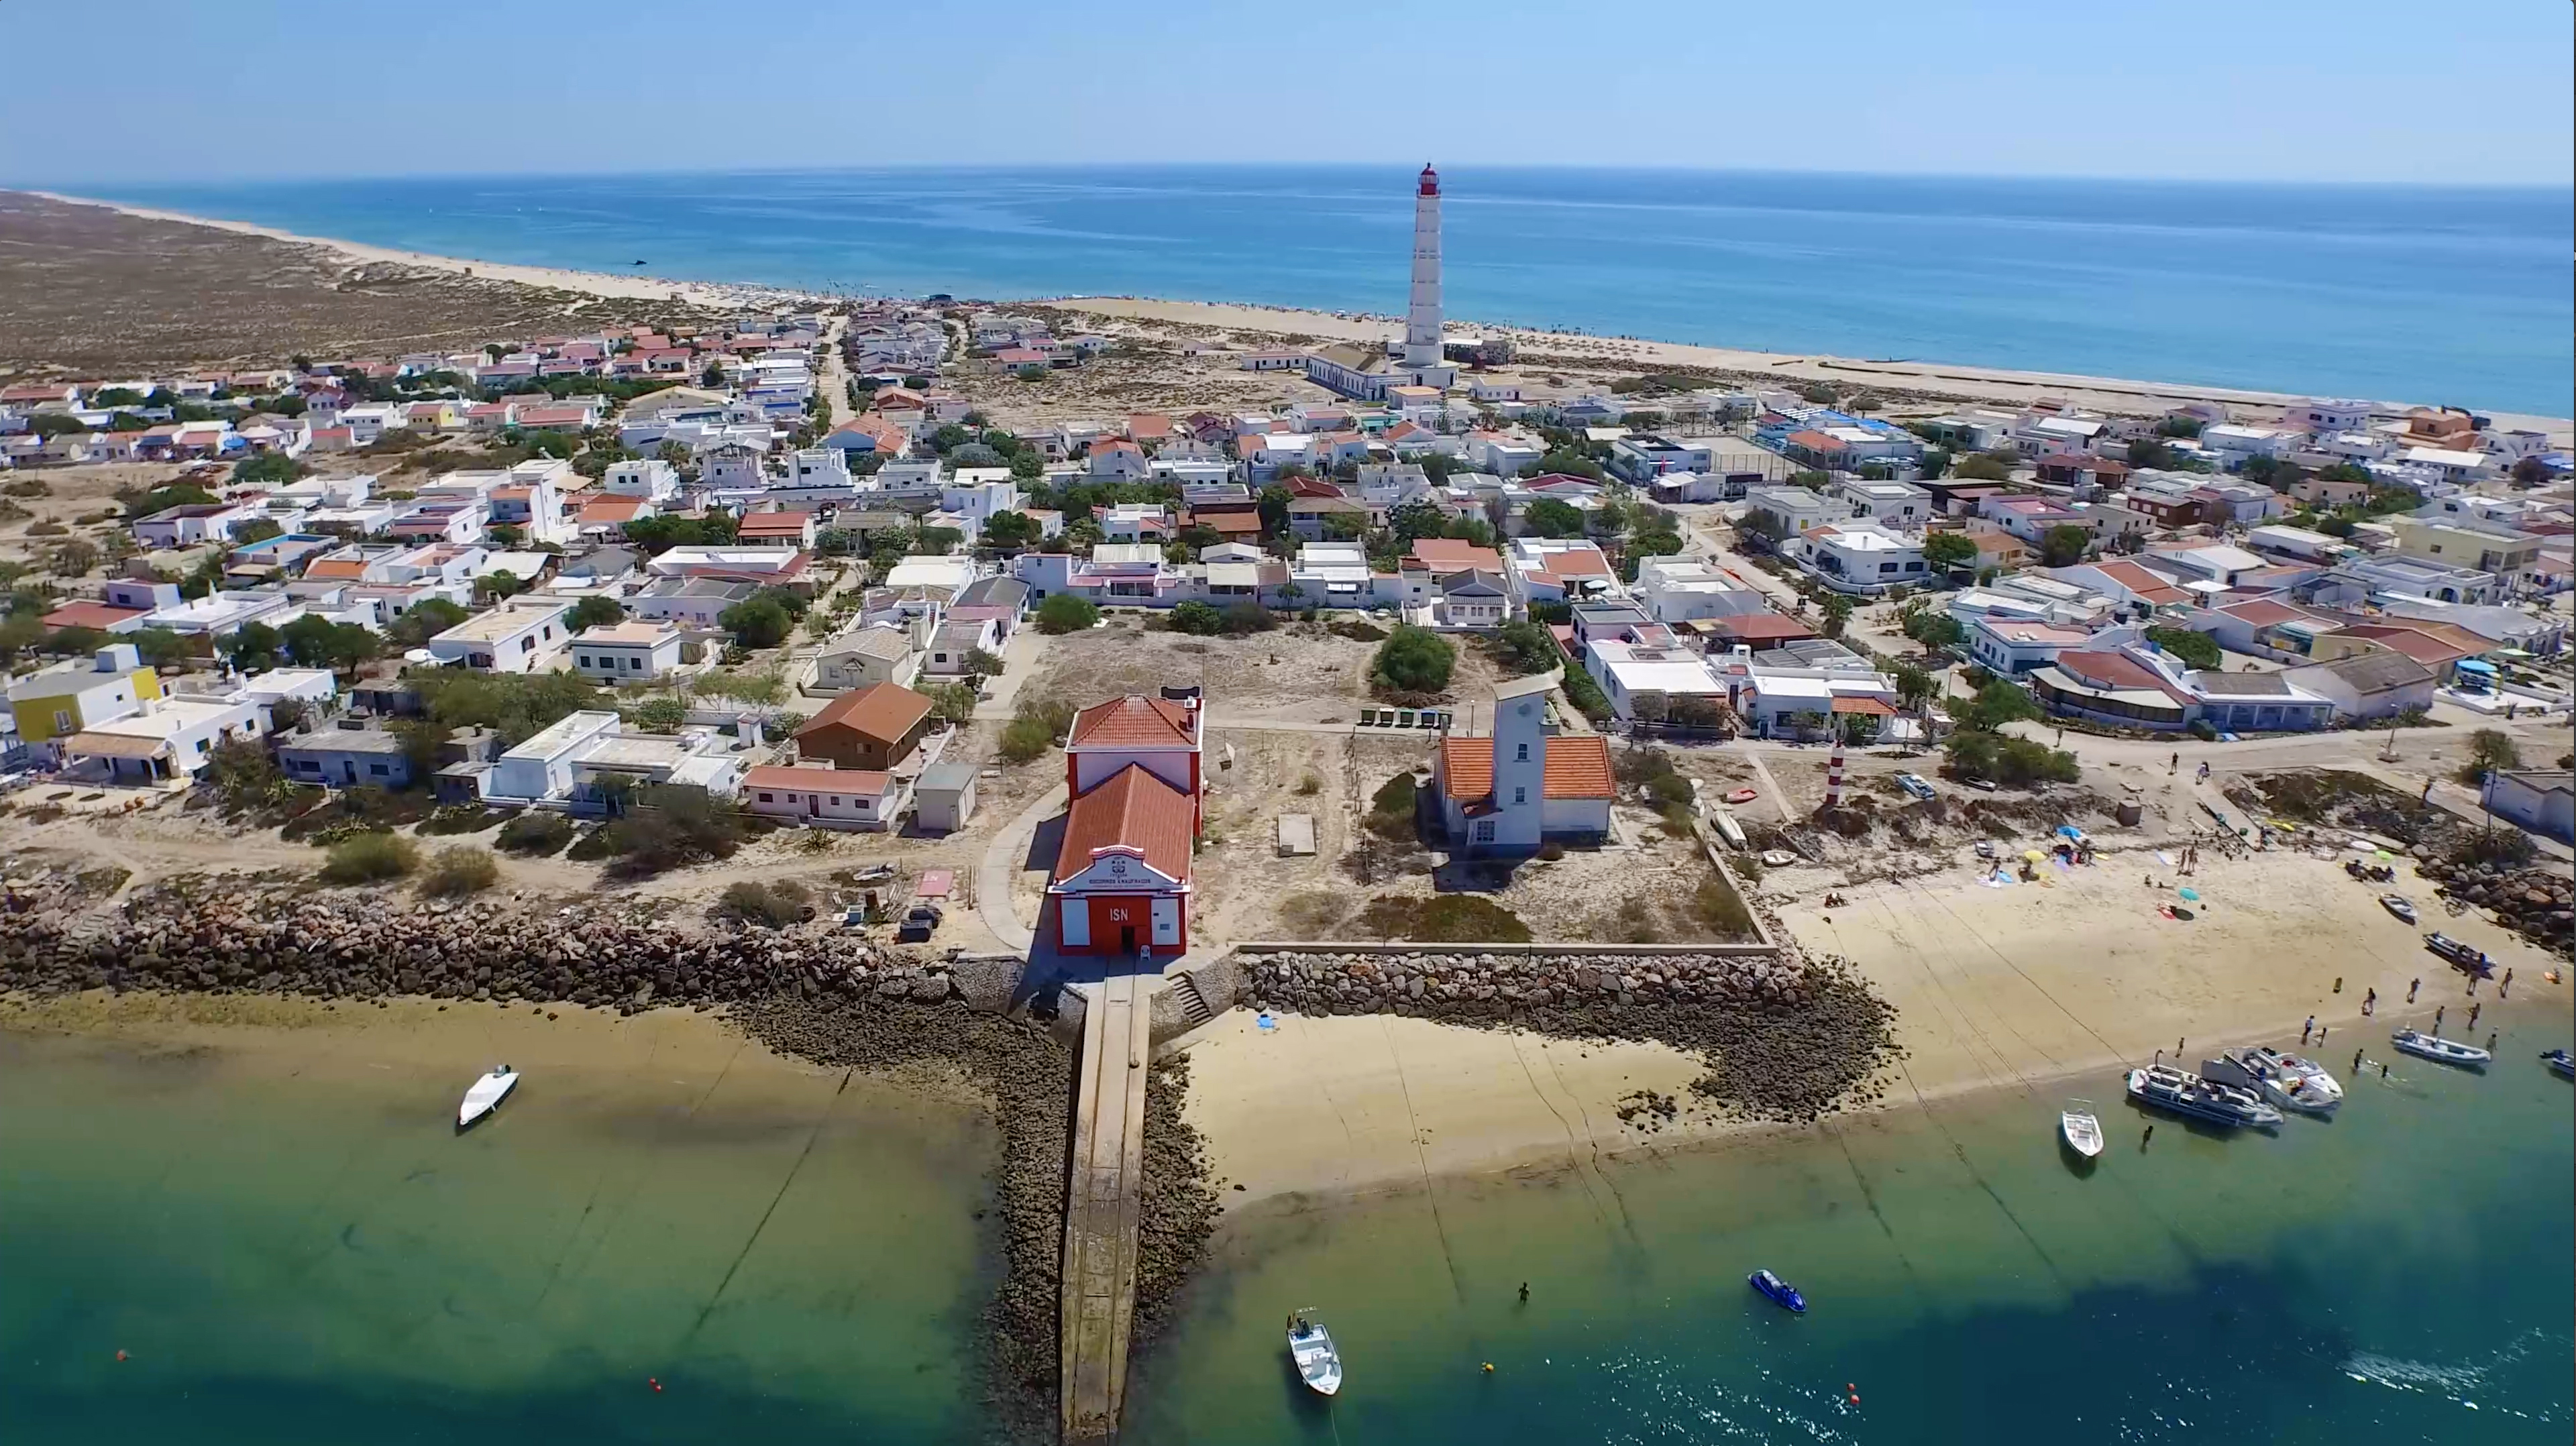 Aerial View of Farol Island Algarve Portugal